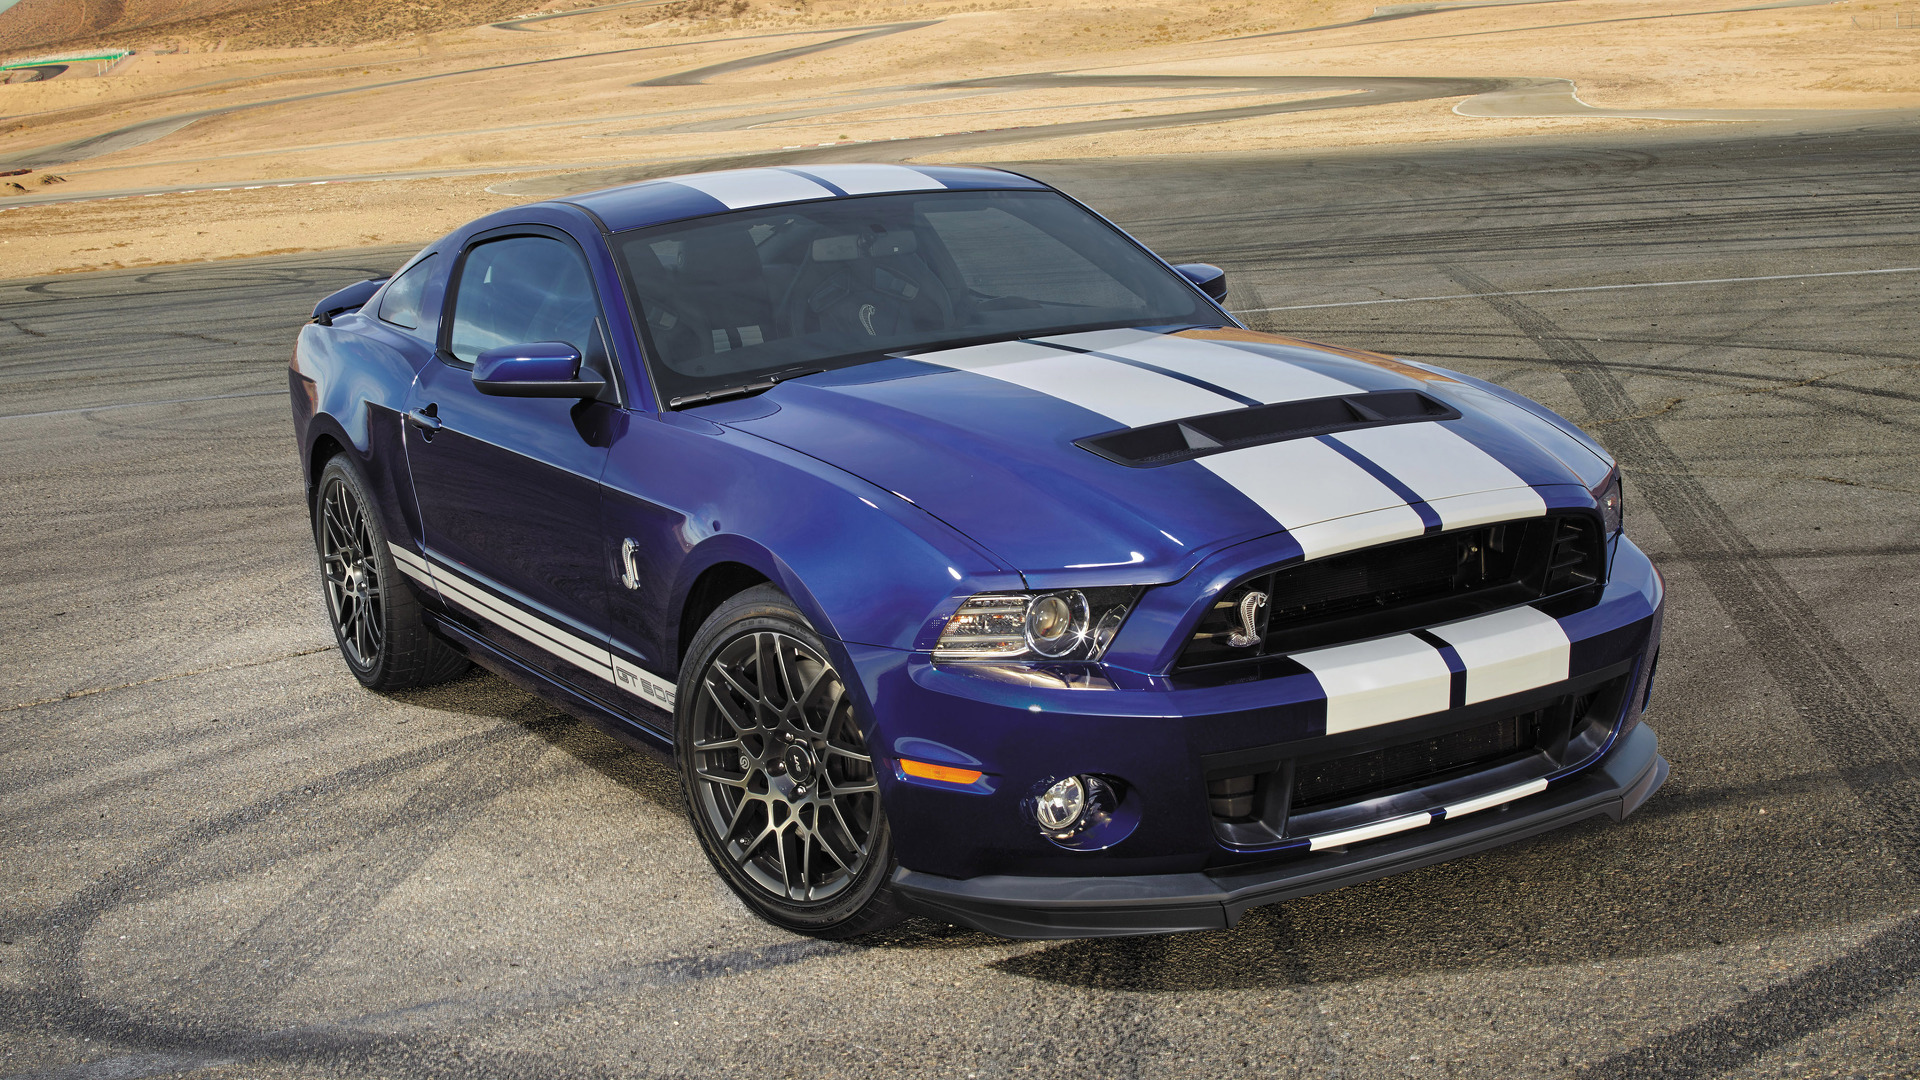 Ford Mustang Shelby Gt500 Elle Laisse Entendre Sa Voix